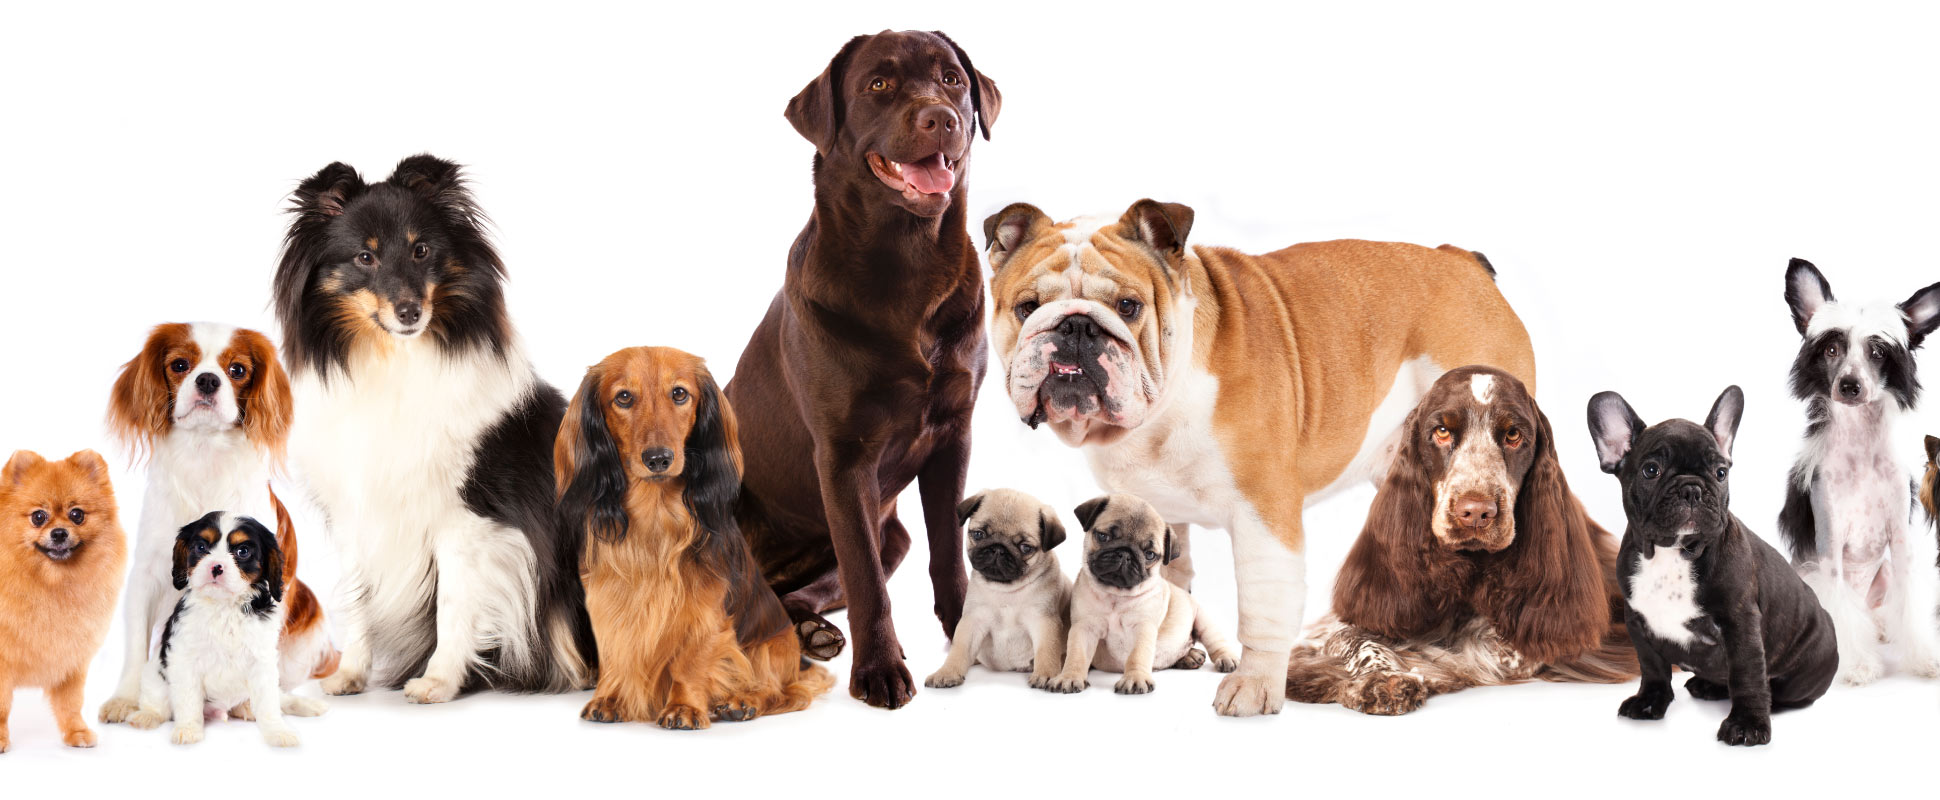 Furry Land Grooming - Las Vegas Dog Grooming